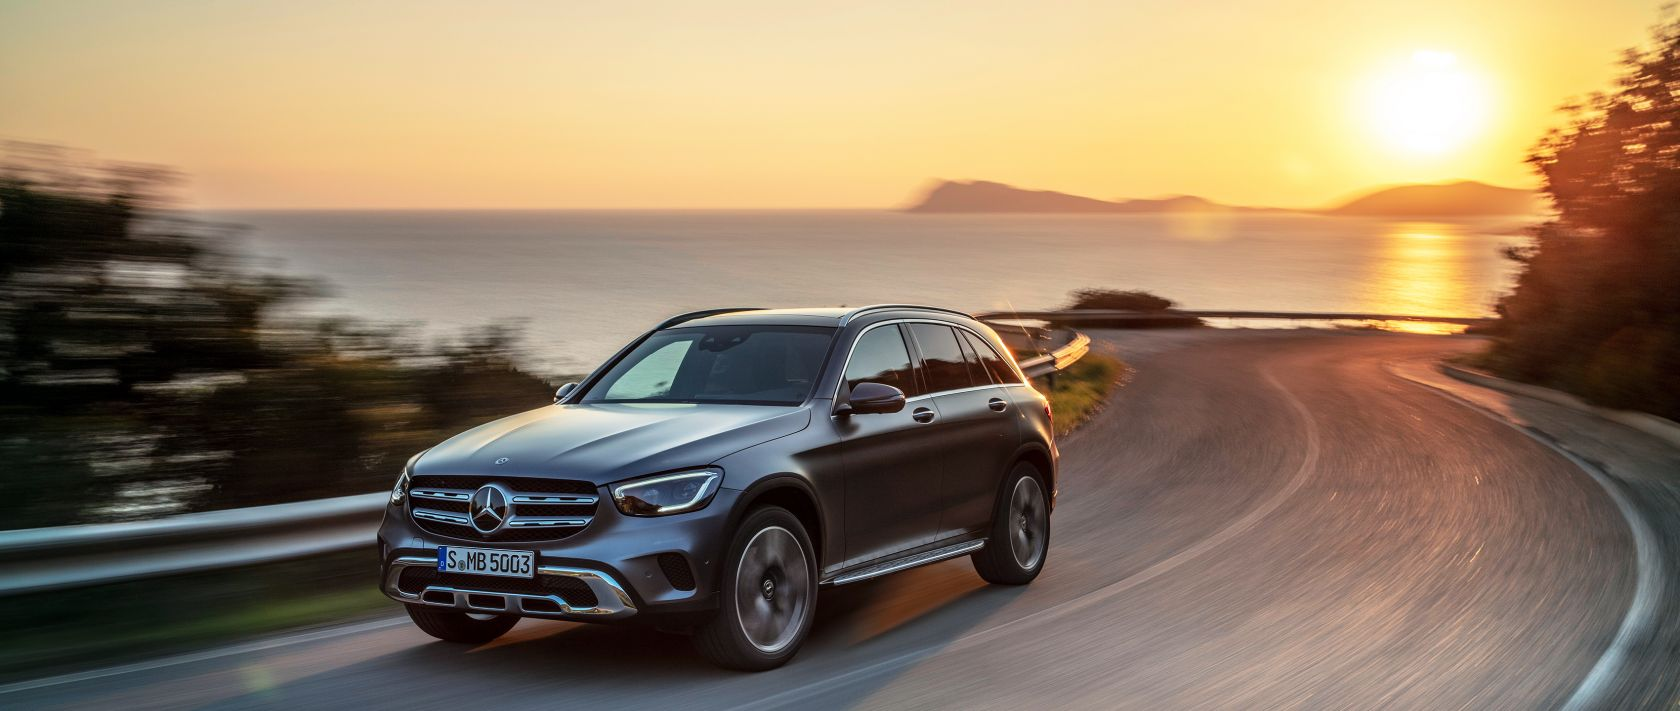 The new 2019 Mercedes-Benz GLC 300 4MATIC (X 253) in designo selenite grey magno at sunset.